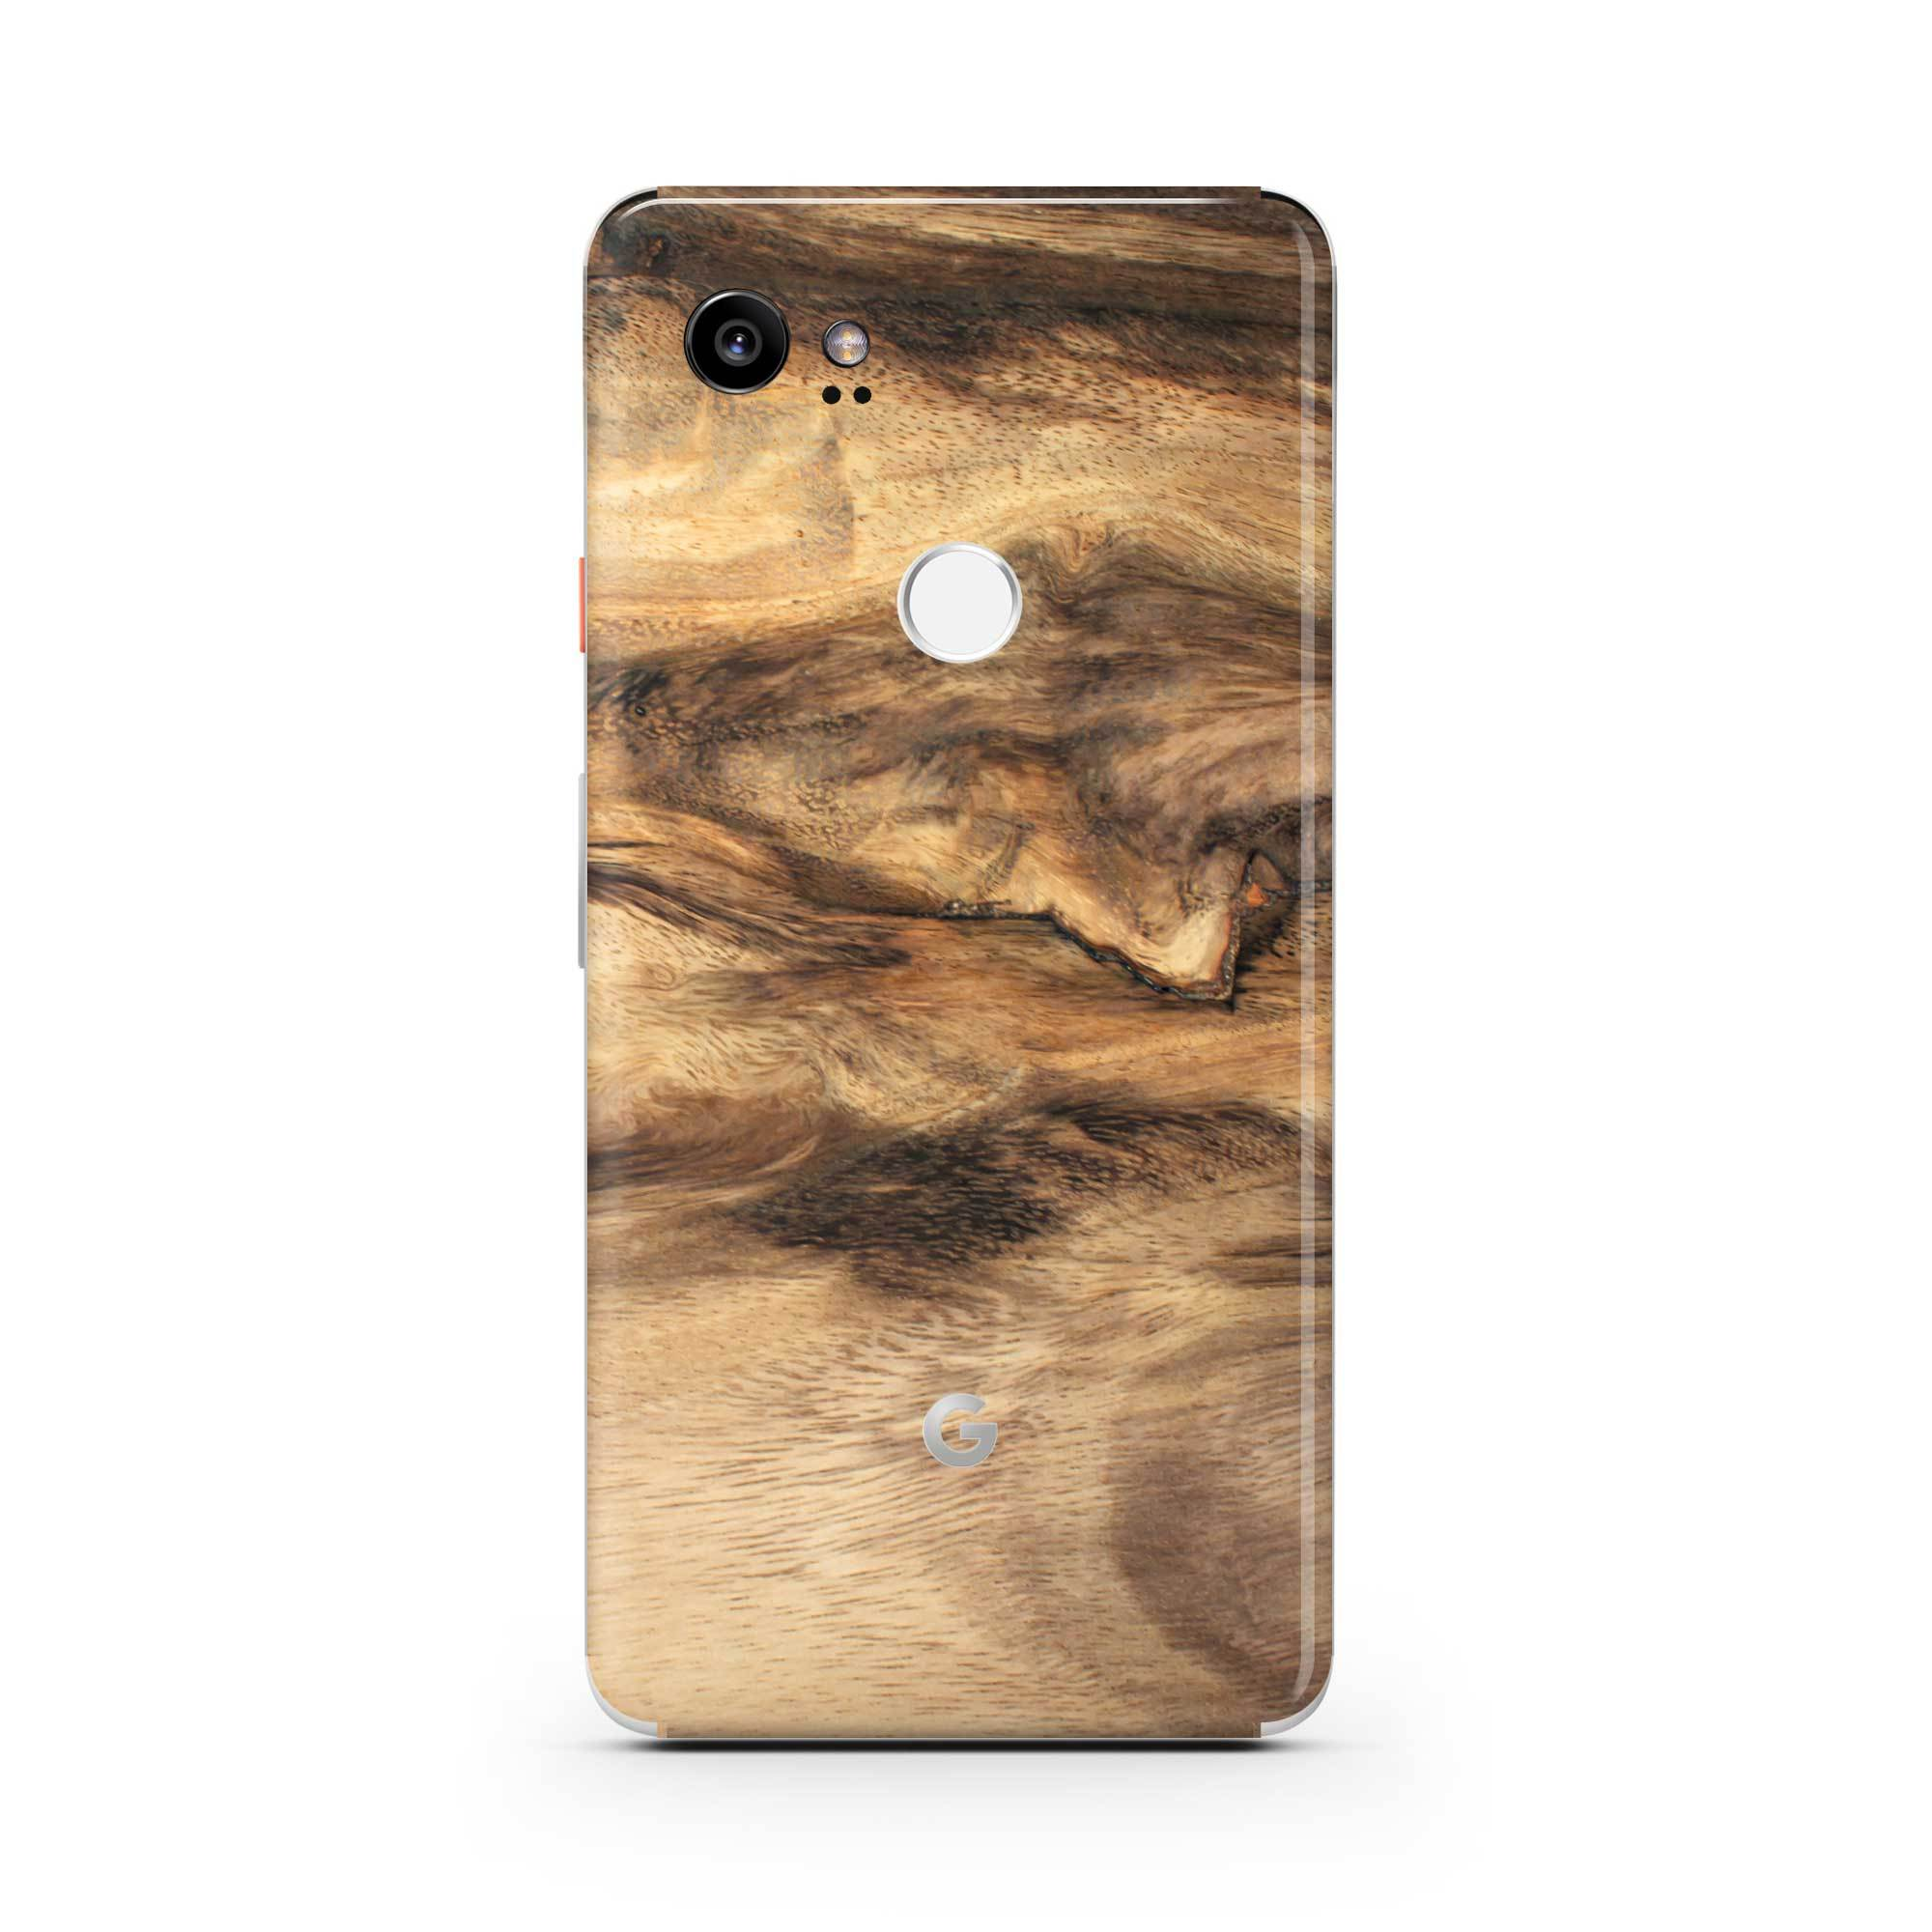 Wood Pixel 3a Skin + Case